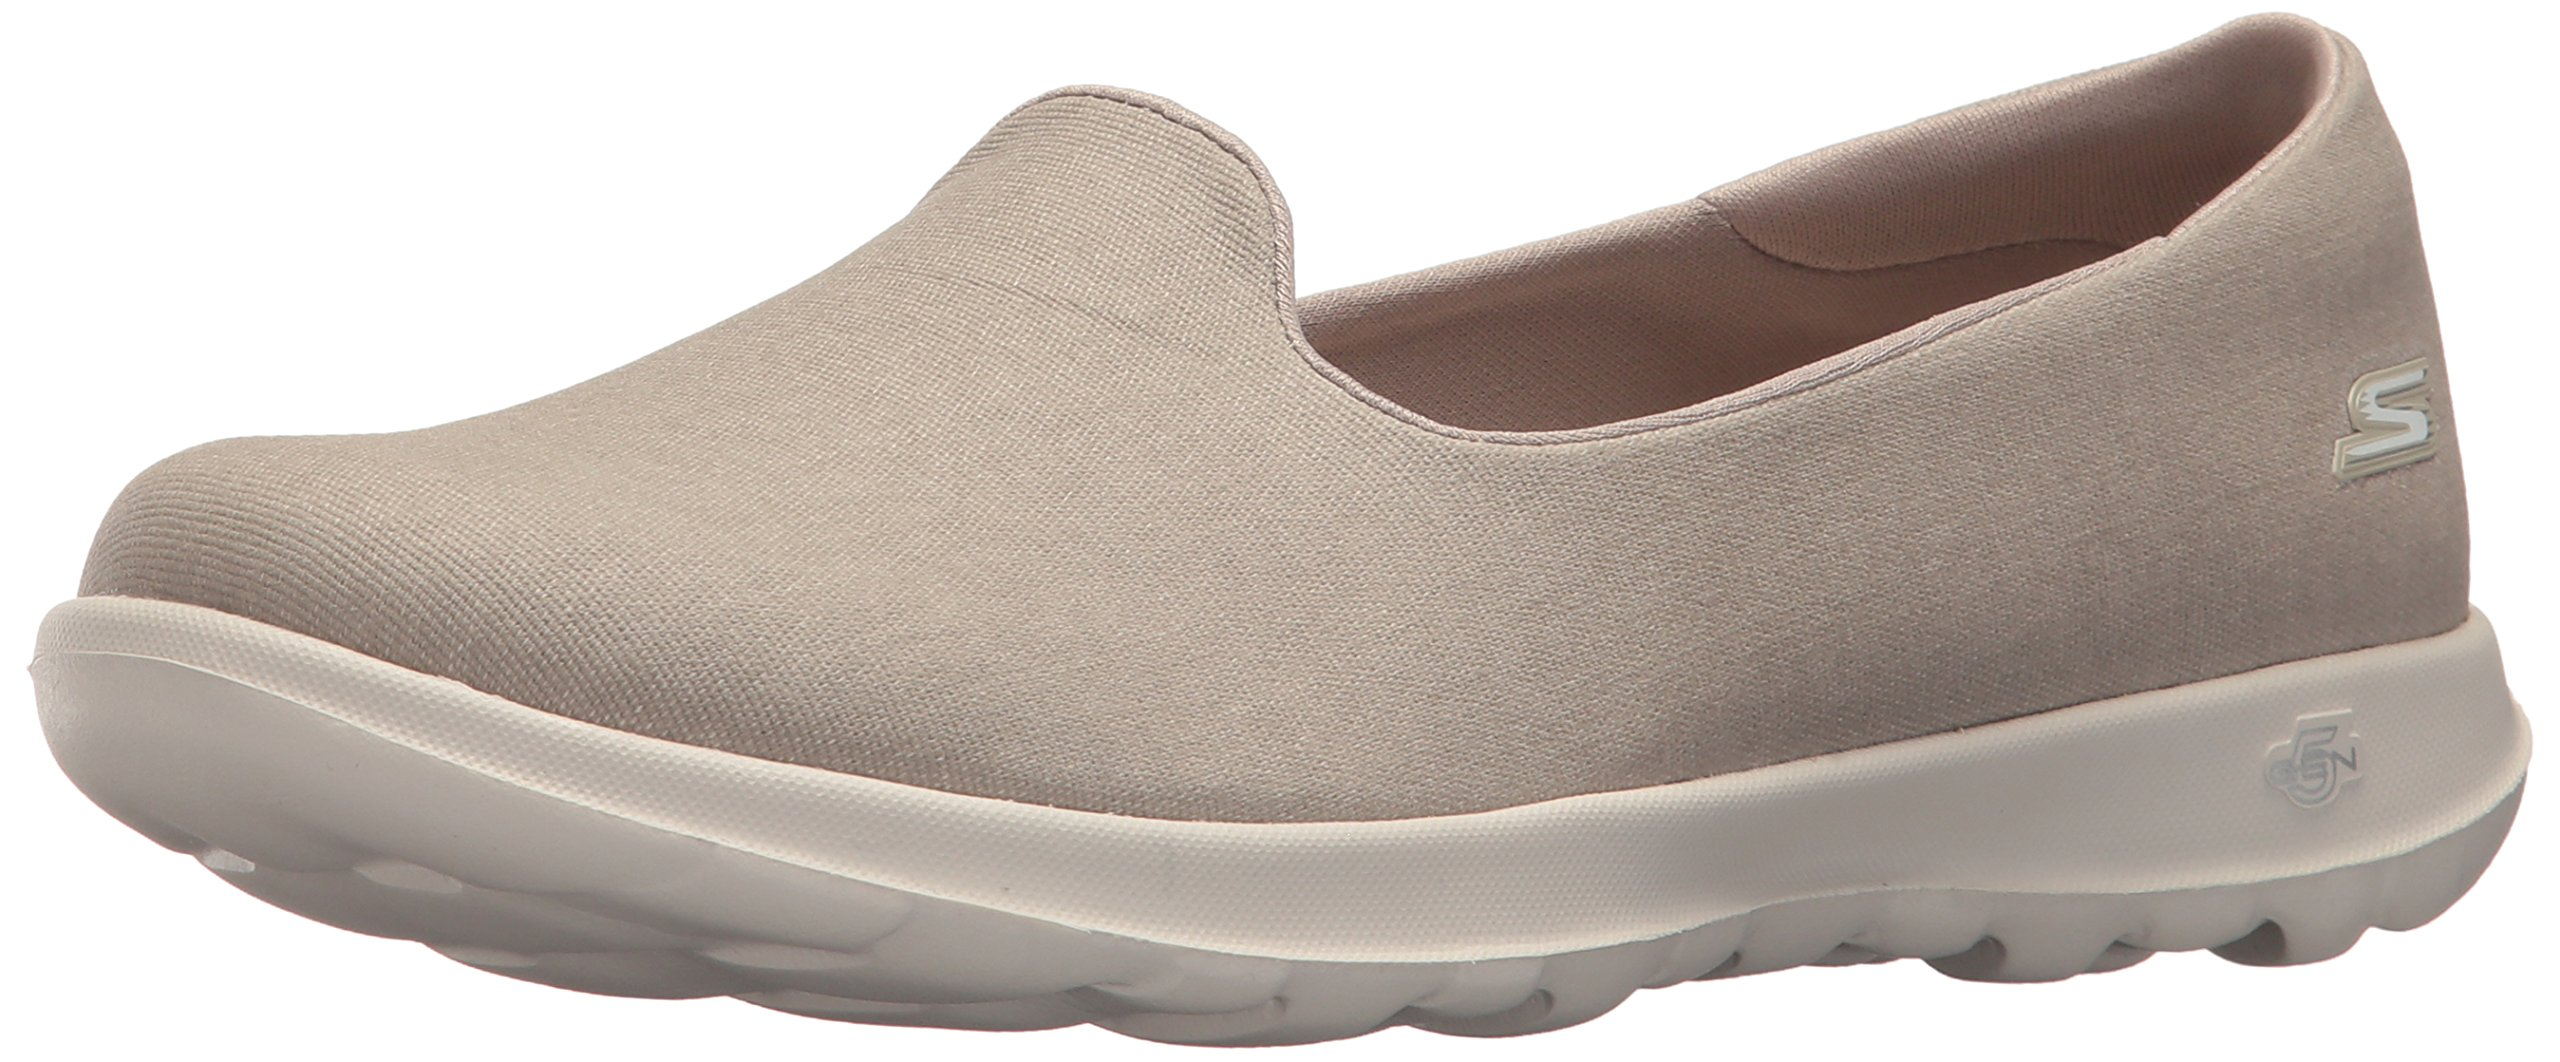 Skechers Performance Women's Go Walk Lite-15411 Loafer Flat,Taupe,8 M US